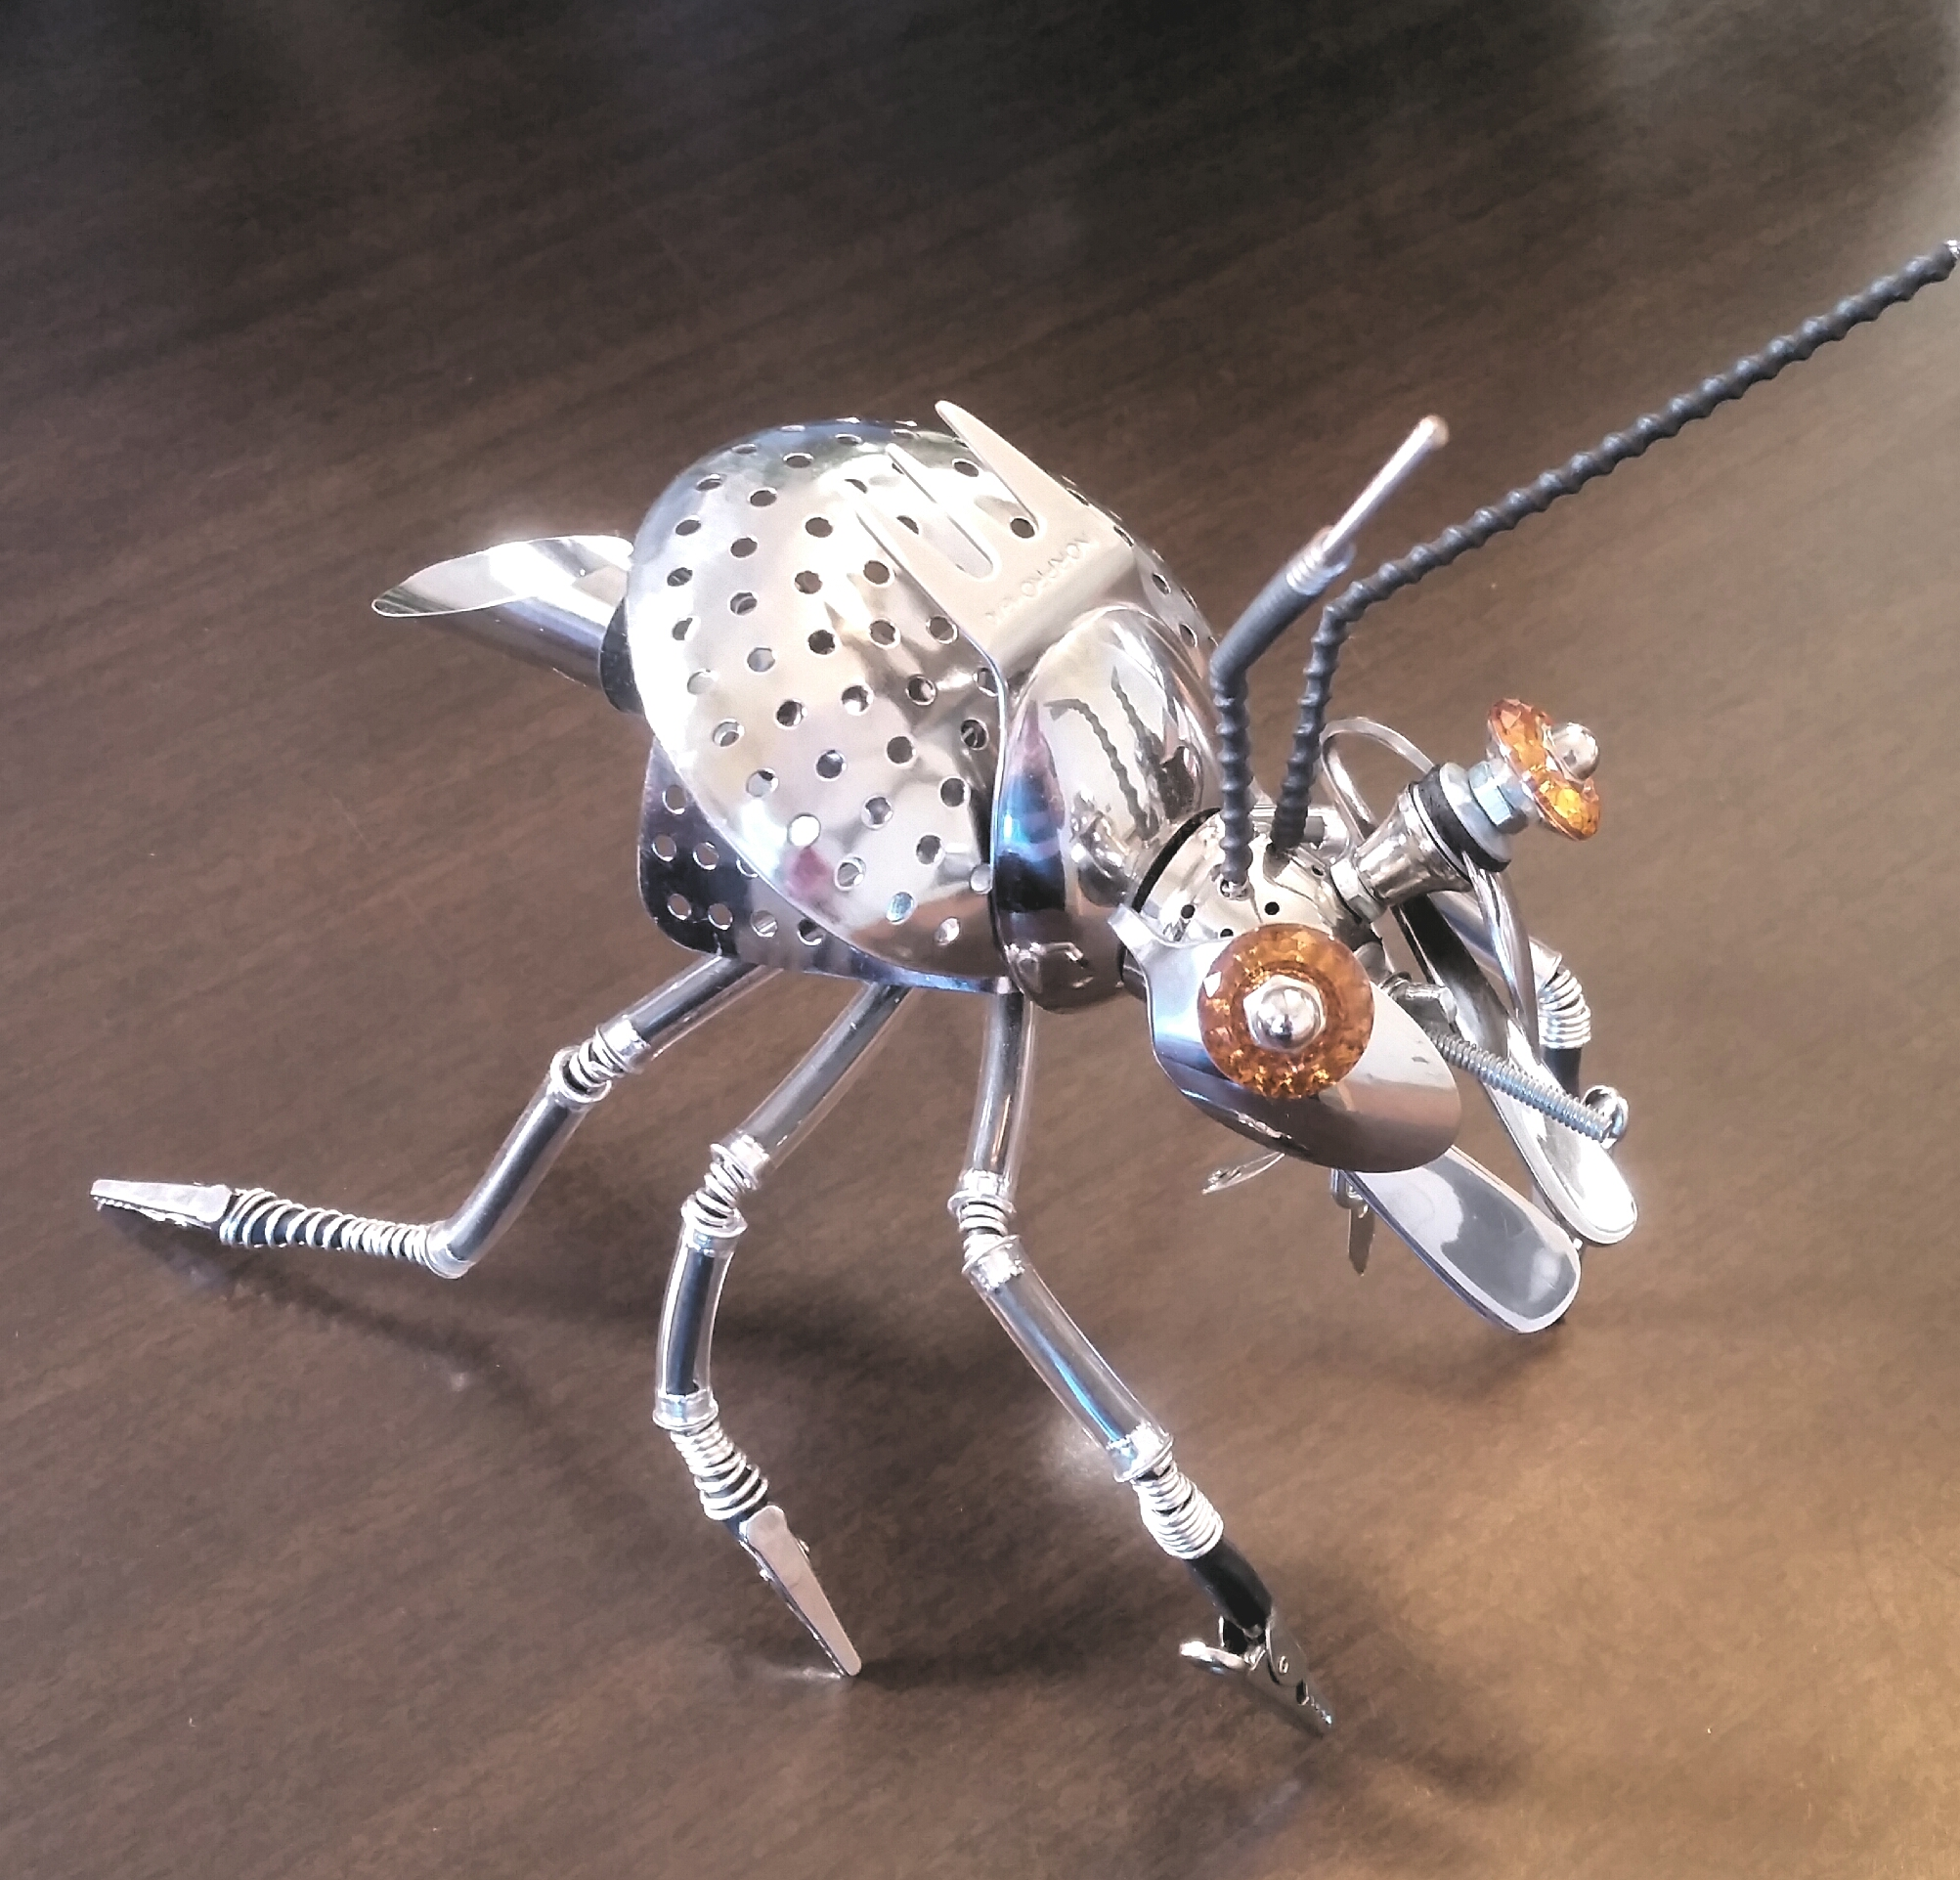 Andrew Bascle, Large Bug Sculpture, stainless metal, value: $250